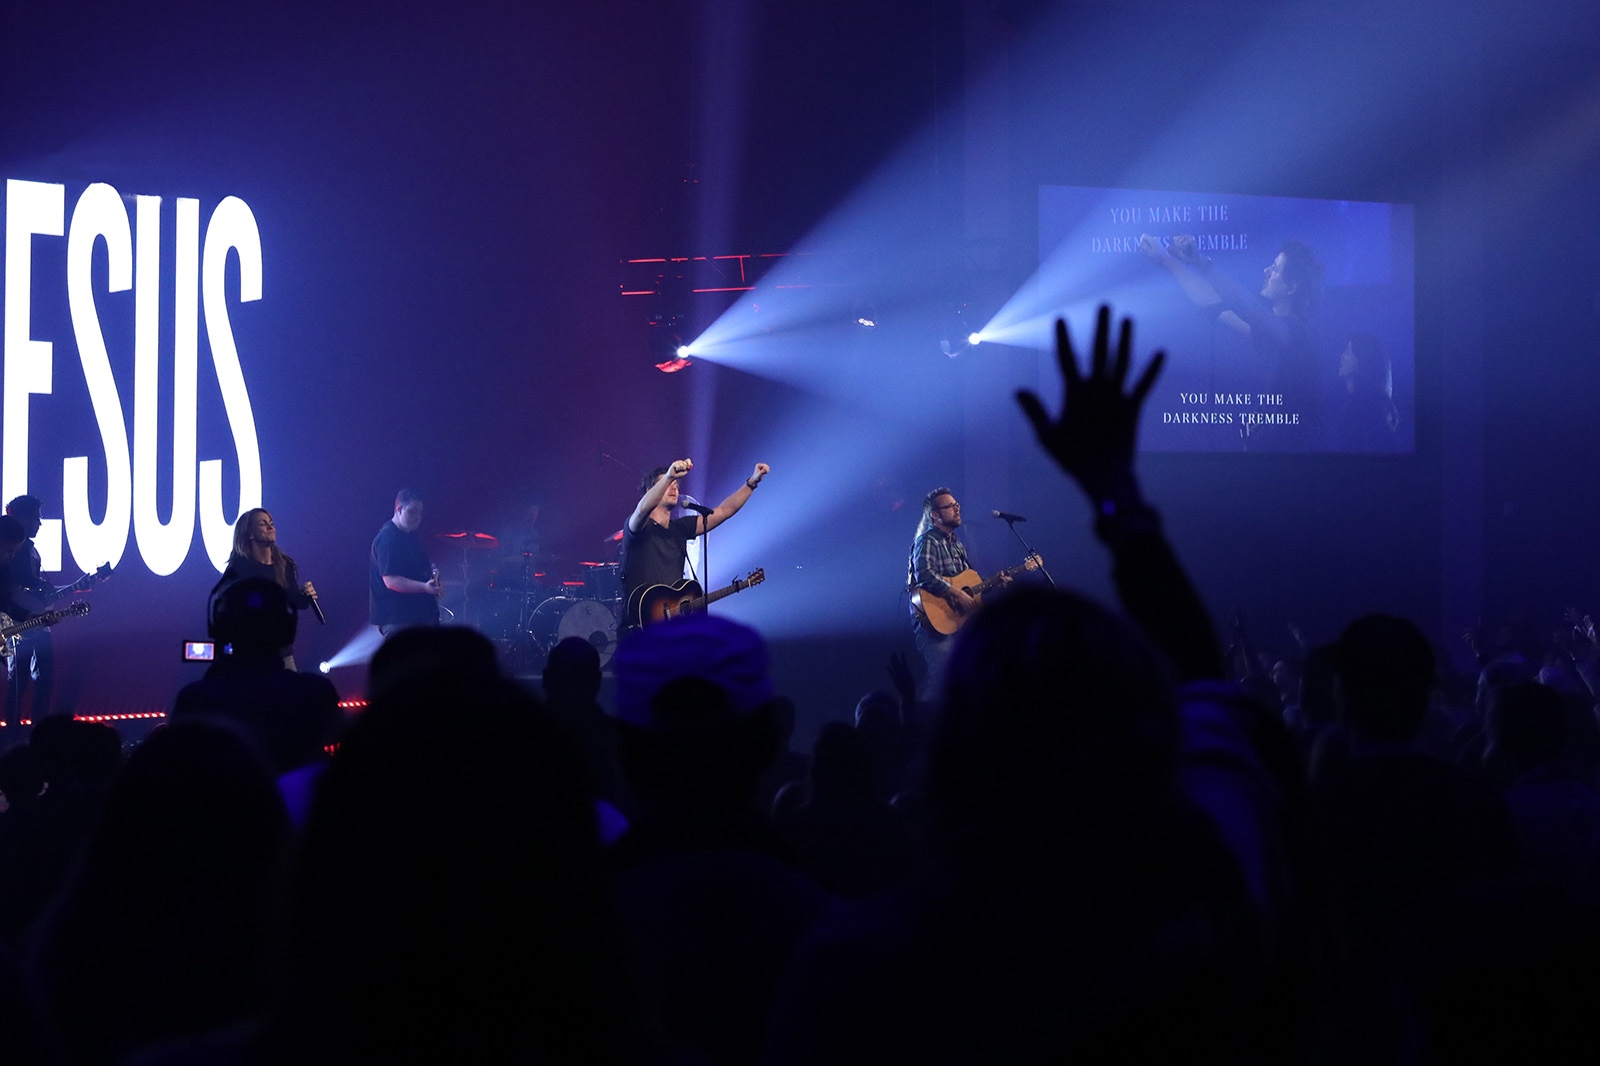 Worship TEAM - As a member of the LCC Worship Team, you will lead people into a worshipful experience with God. If you are a gifted musician and/or singer, you can play a vital role in the LCC worship services.